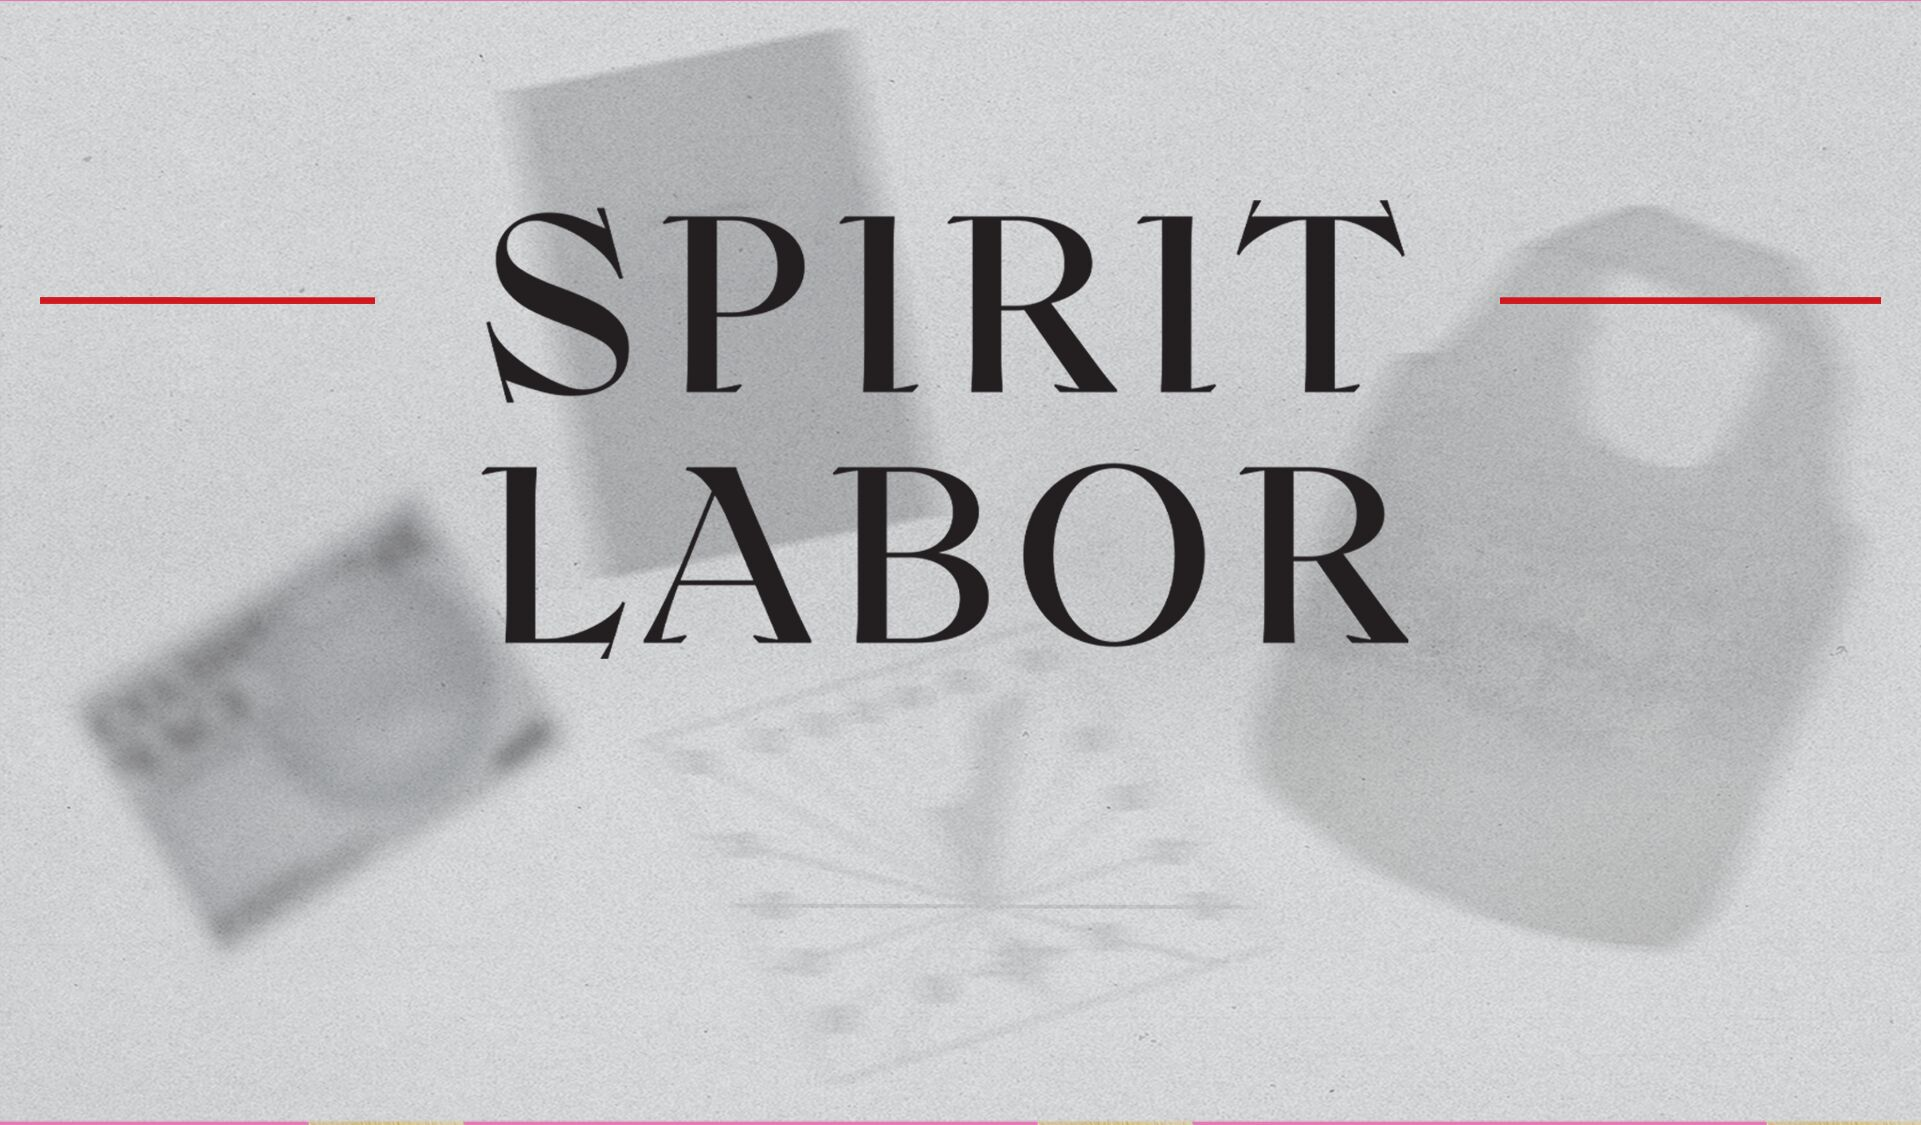 SPIRIT LABOR: DURATION, DIFFICULTY, AND AFFECT